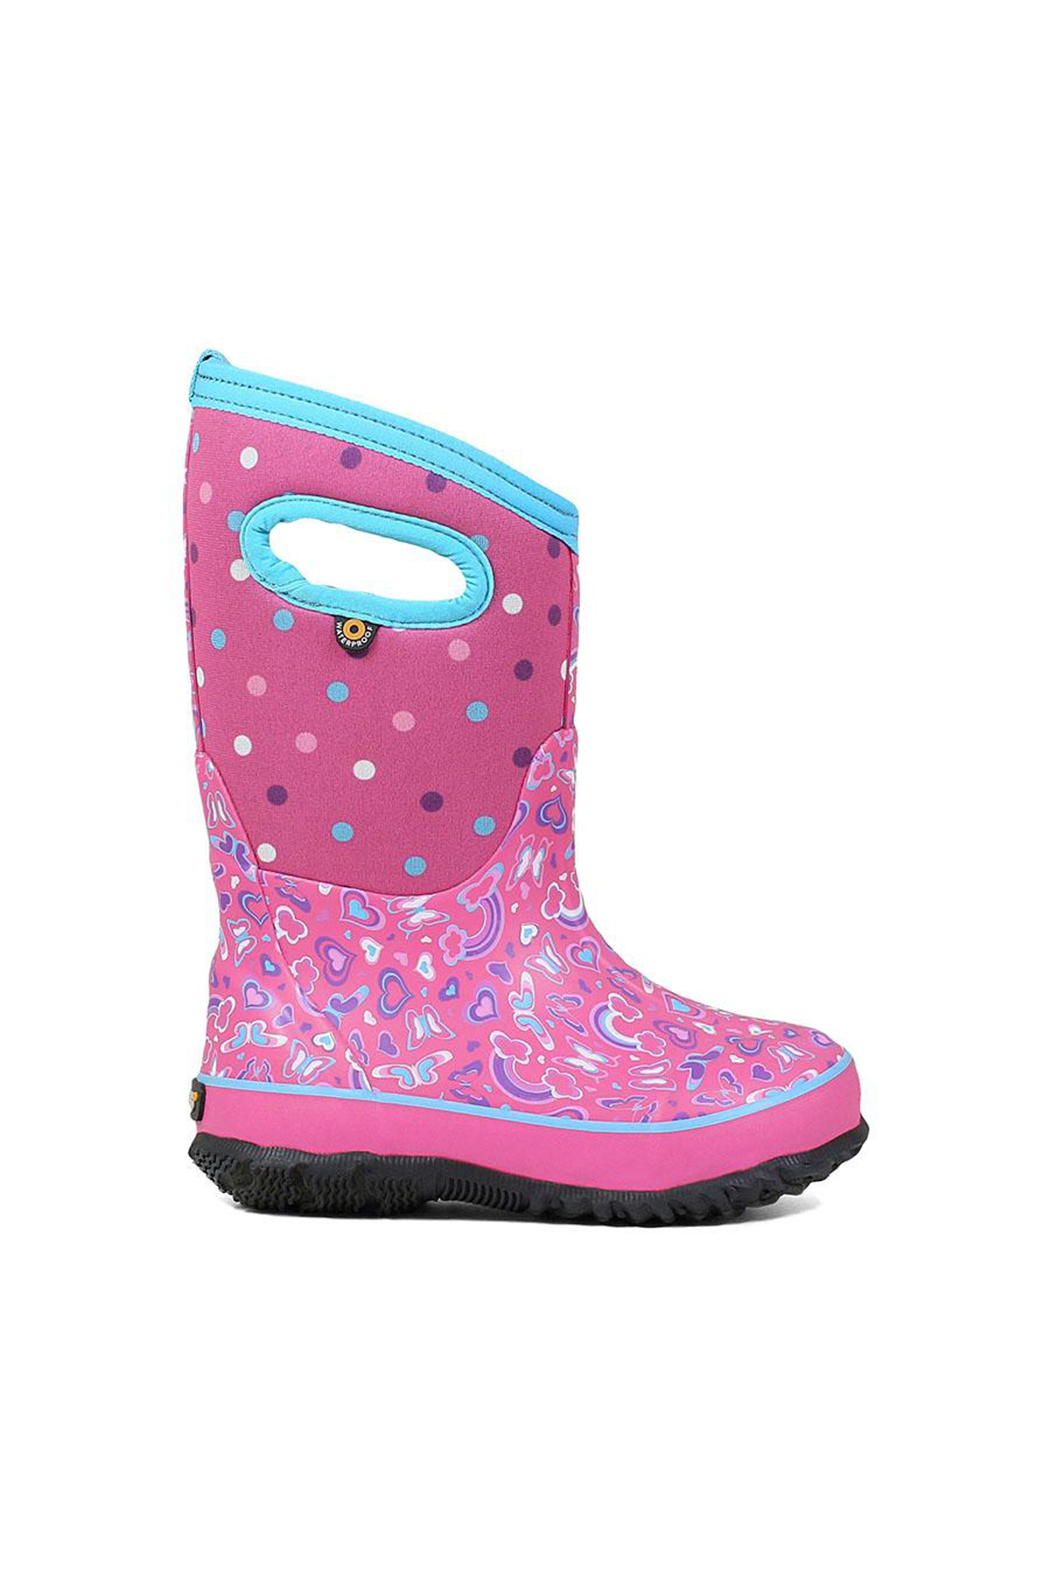 bogs  Classic Rainbow Kids Insulated Boots - Main Image